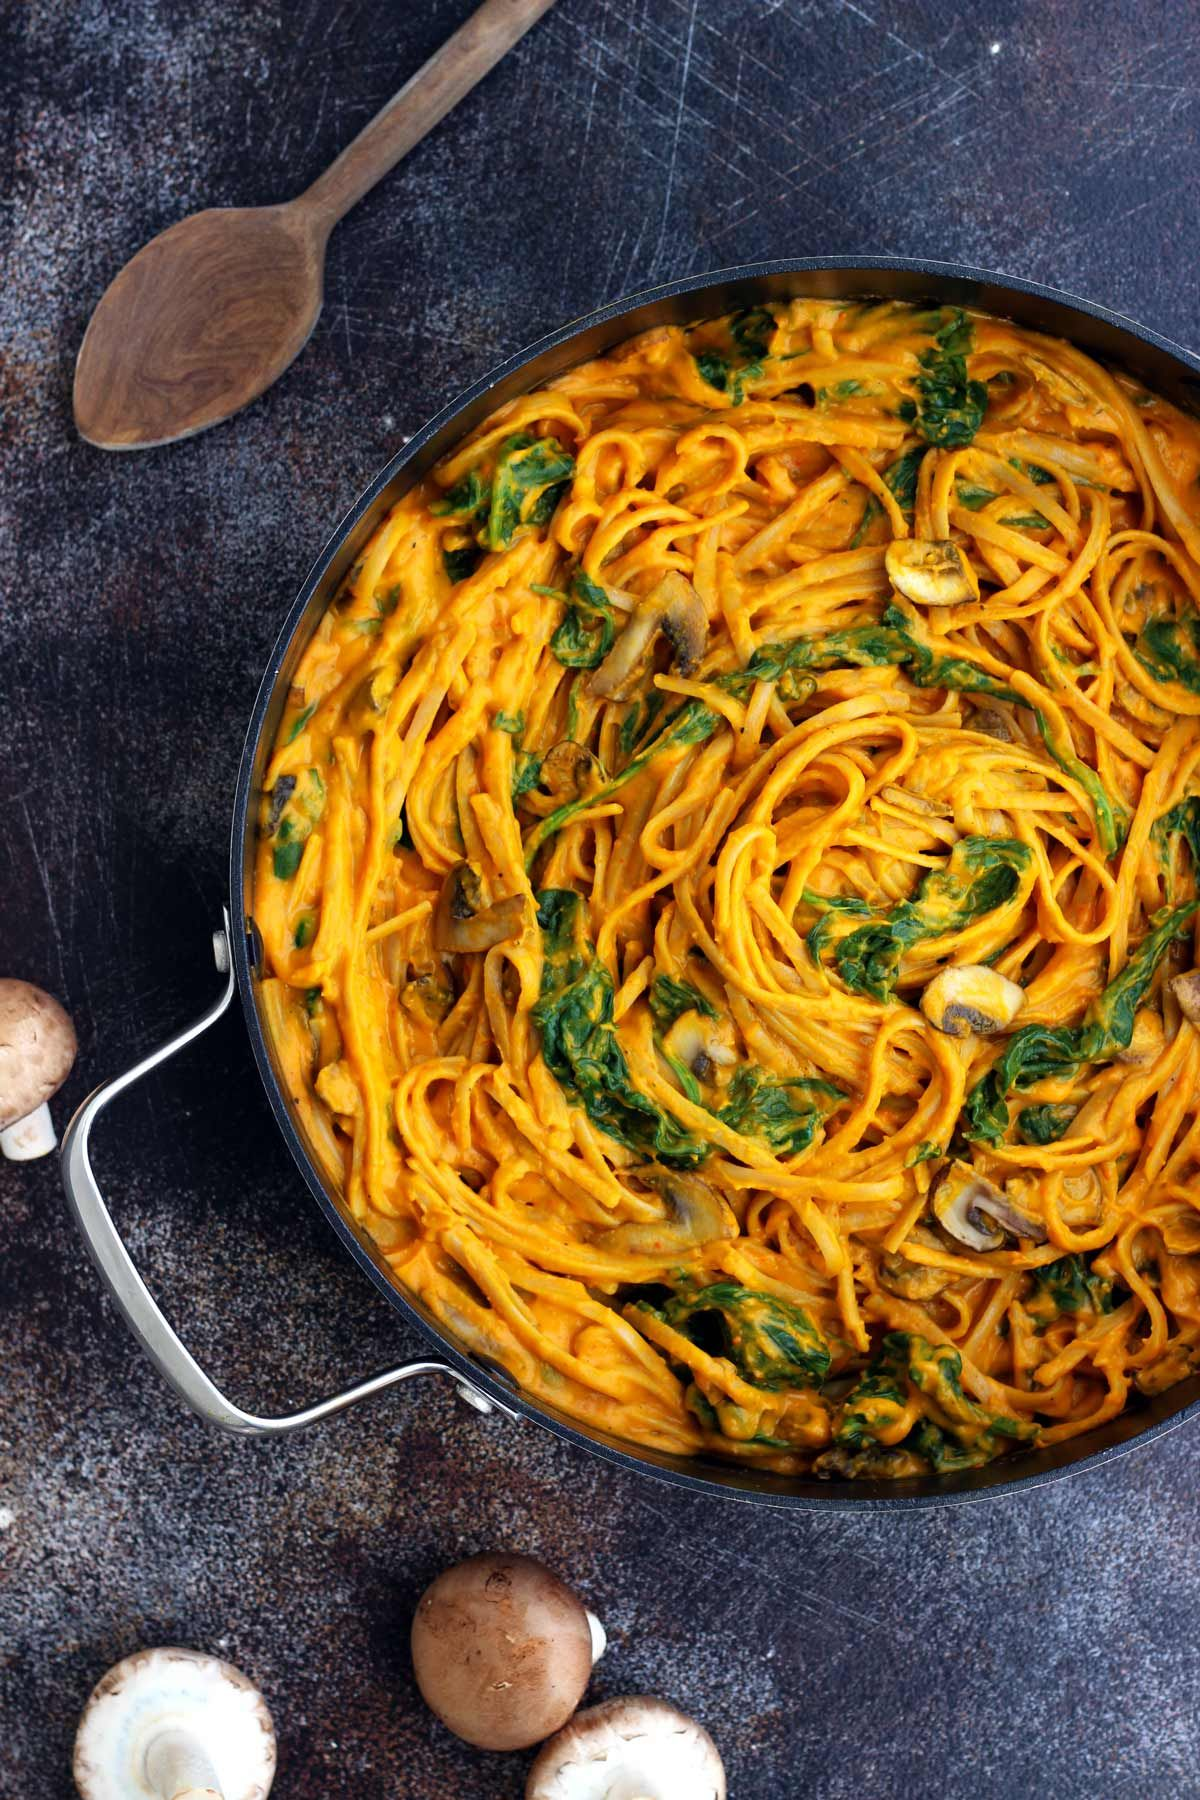 40 irresistible savory vegan comfort food recipes invierno phealthy pumpkin pasta with spinach and mushrooms delicious vegan 30 minutes forumfinder Gallery